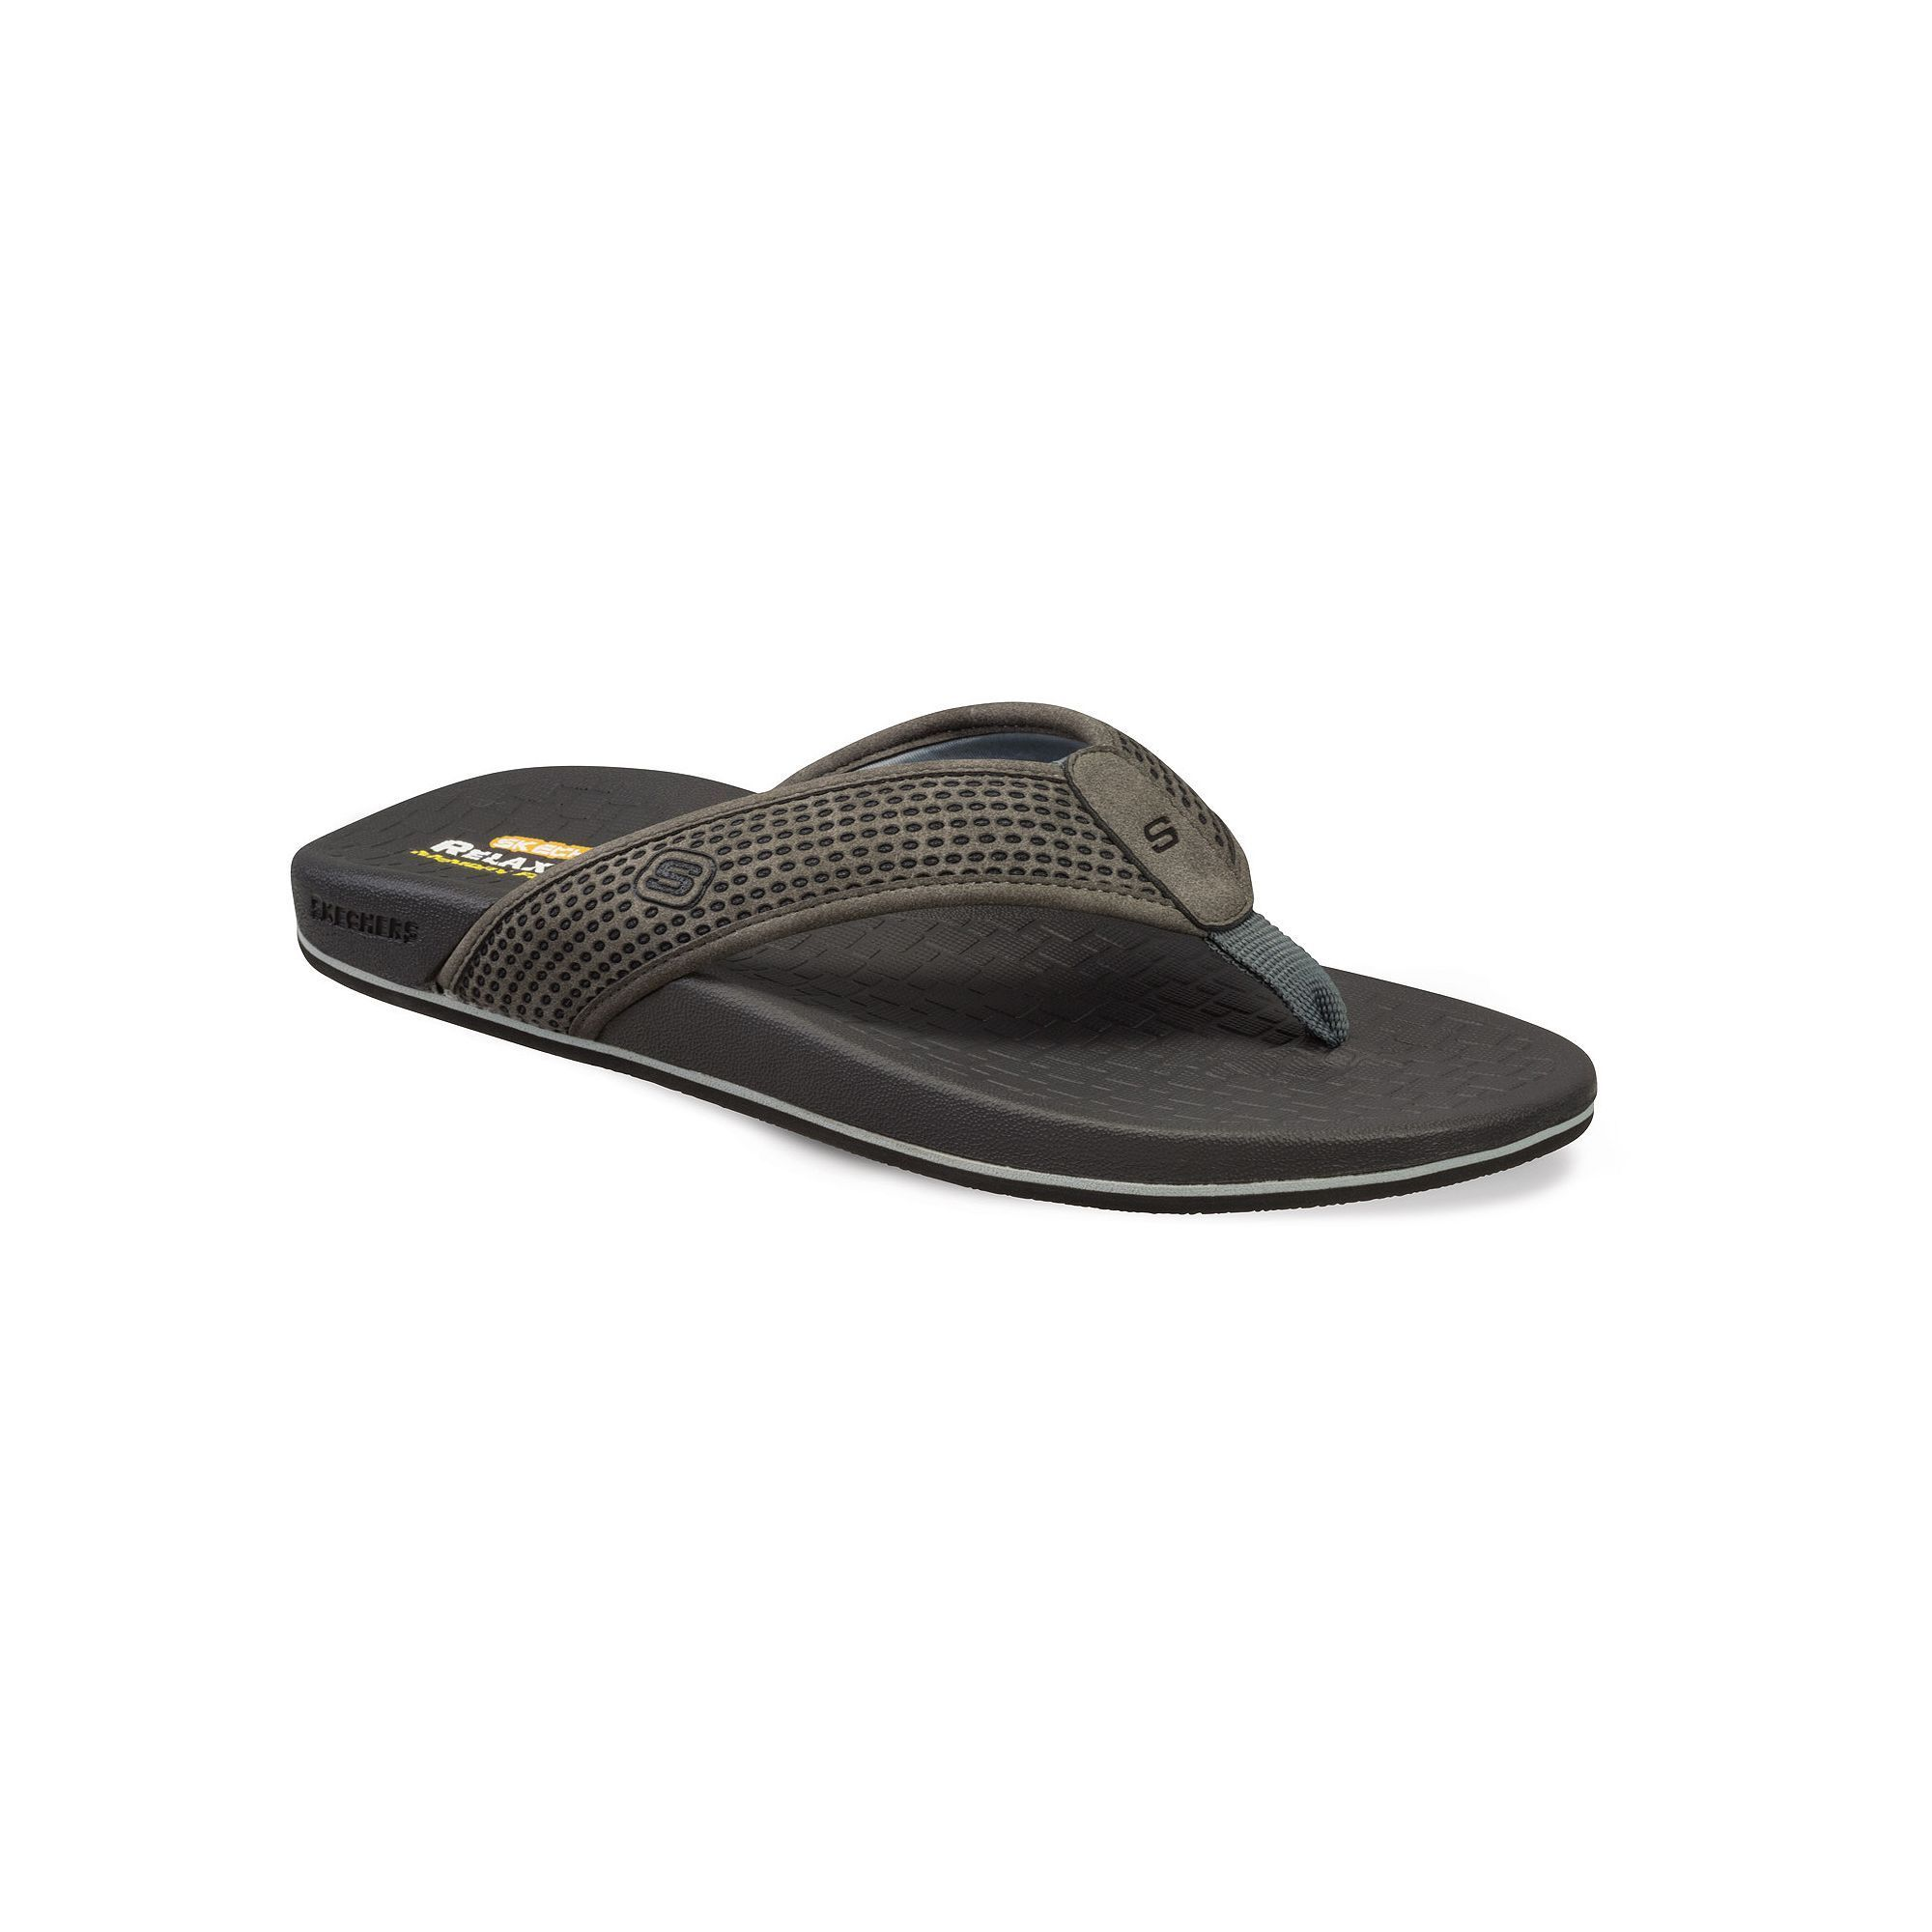 Skechers Relaxed Fit Pelem Emiro Flip-Flop(Men's) -Gray Clearance Pre Order Buy Cheap Footlocker Pictures Sale For Cheap For Cheap Sale Online Discount Affordable LBLwFHF